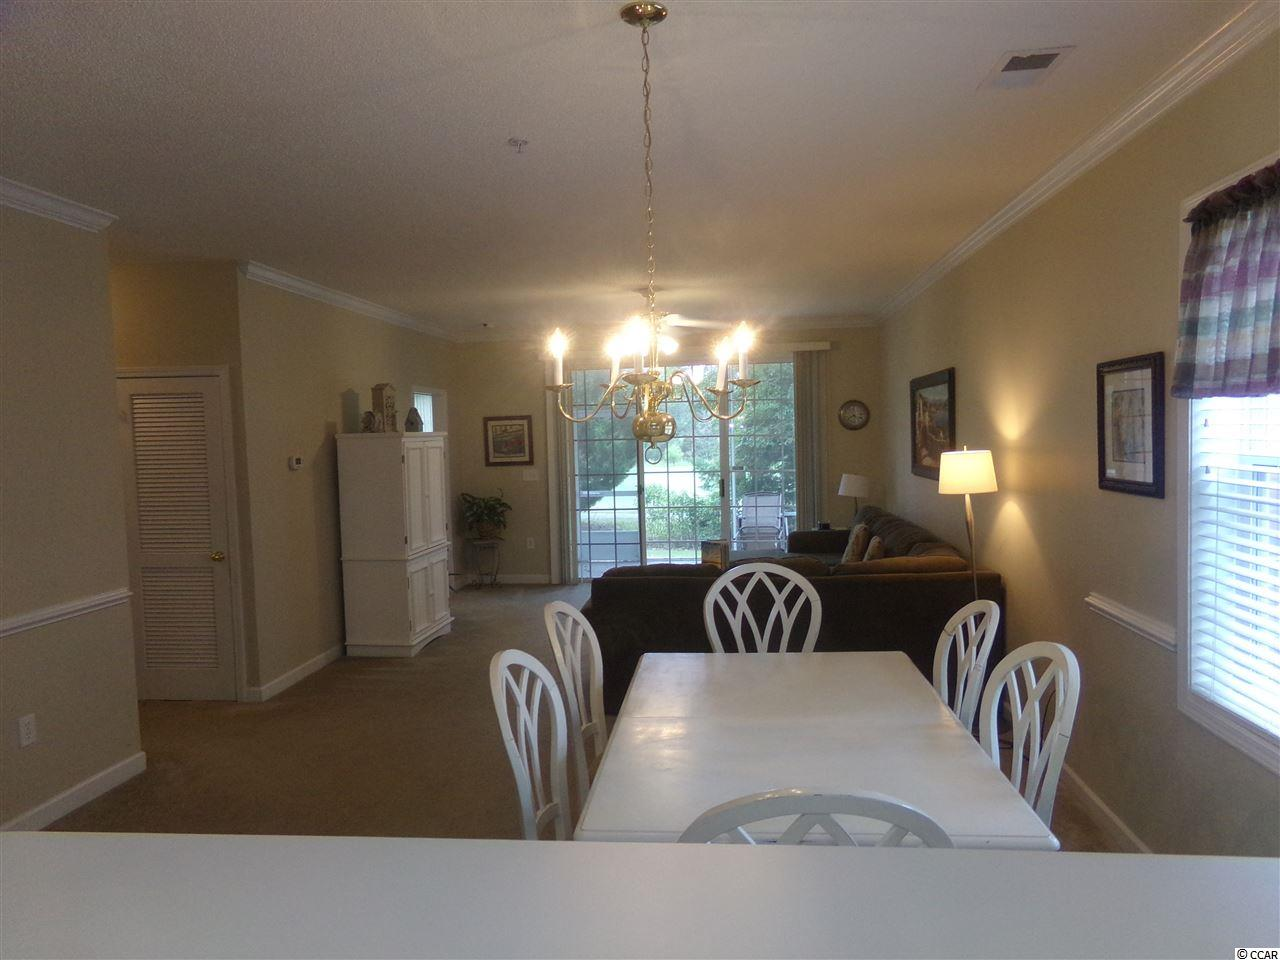 MLS #1719784 at  The Havens @ Barefoot Resort for sale